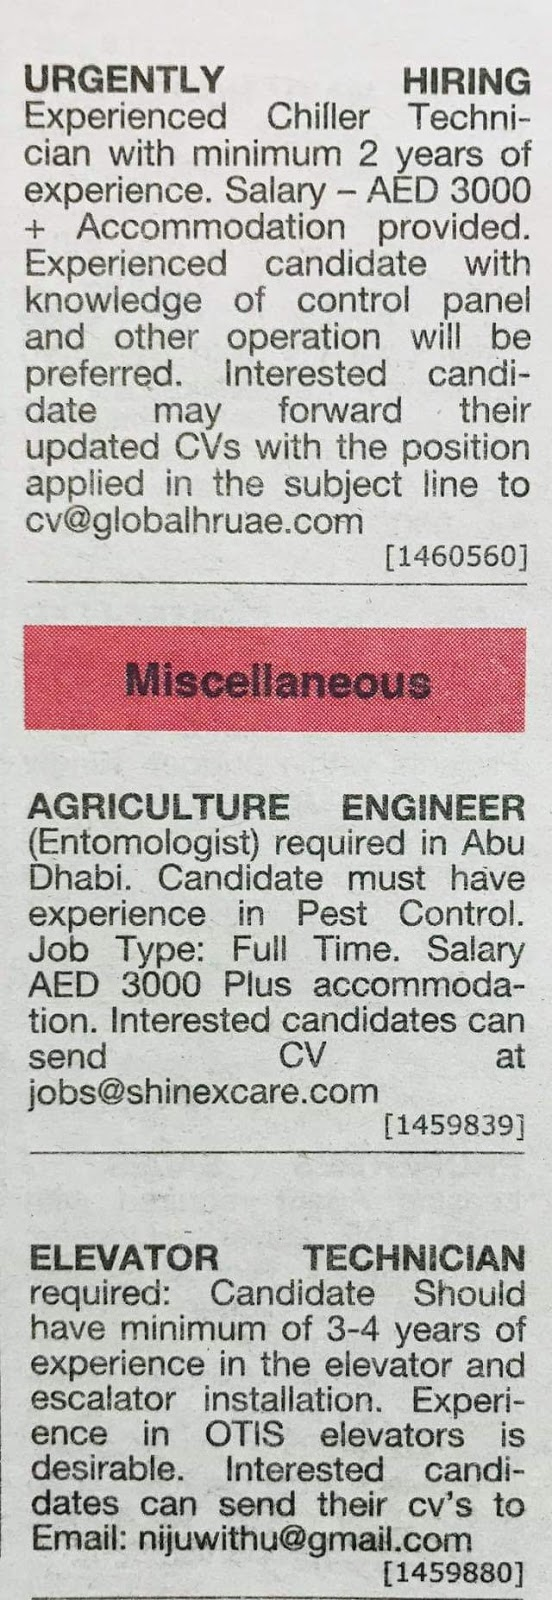 khaleej times jobs classified today 26/11/2018 - وظائف شاغرة